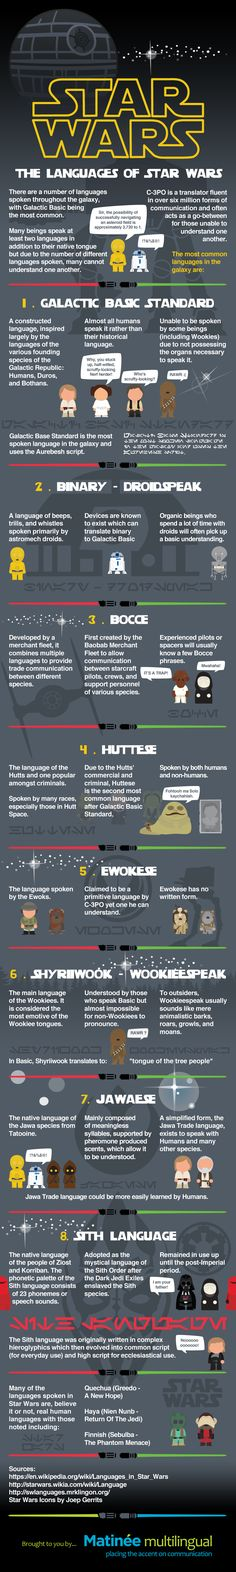 The Languages of Star Wars #infographic #Language #Entertainment